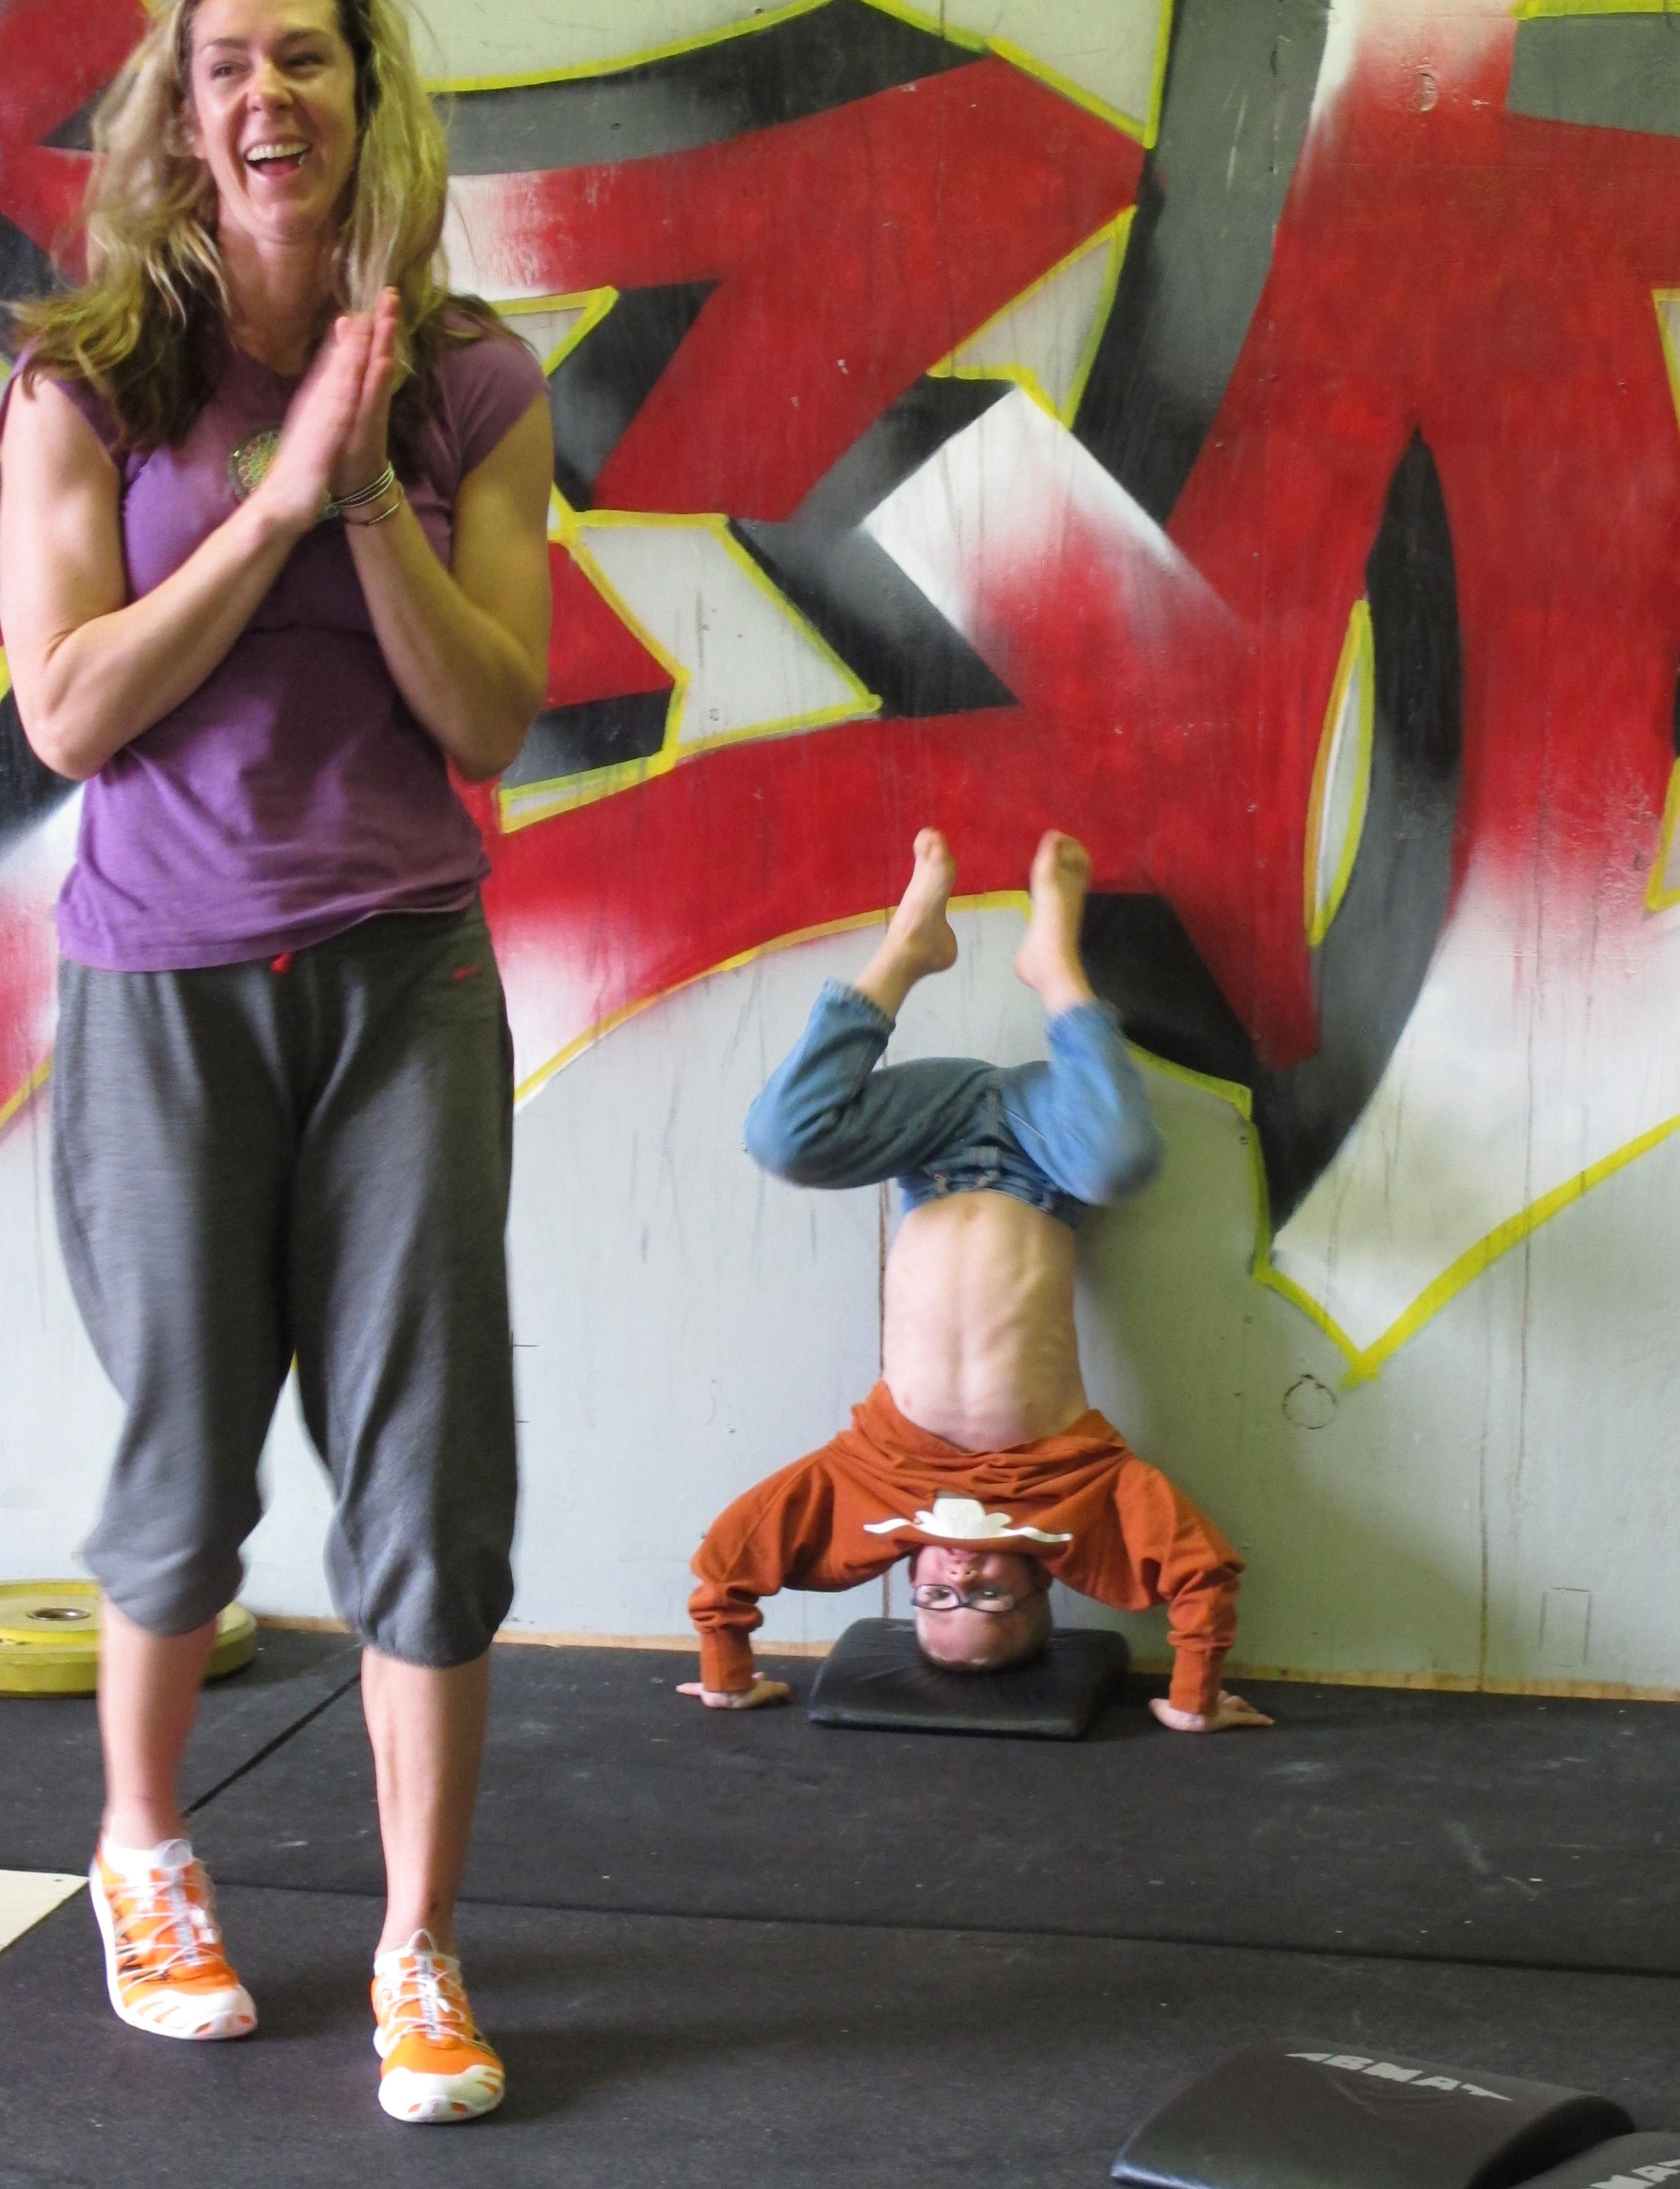 Young Mom cheers her son's handstand pushups